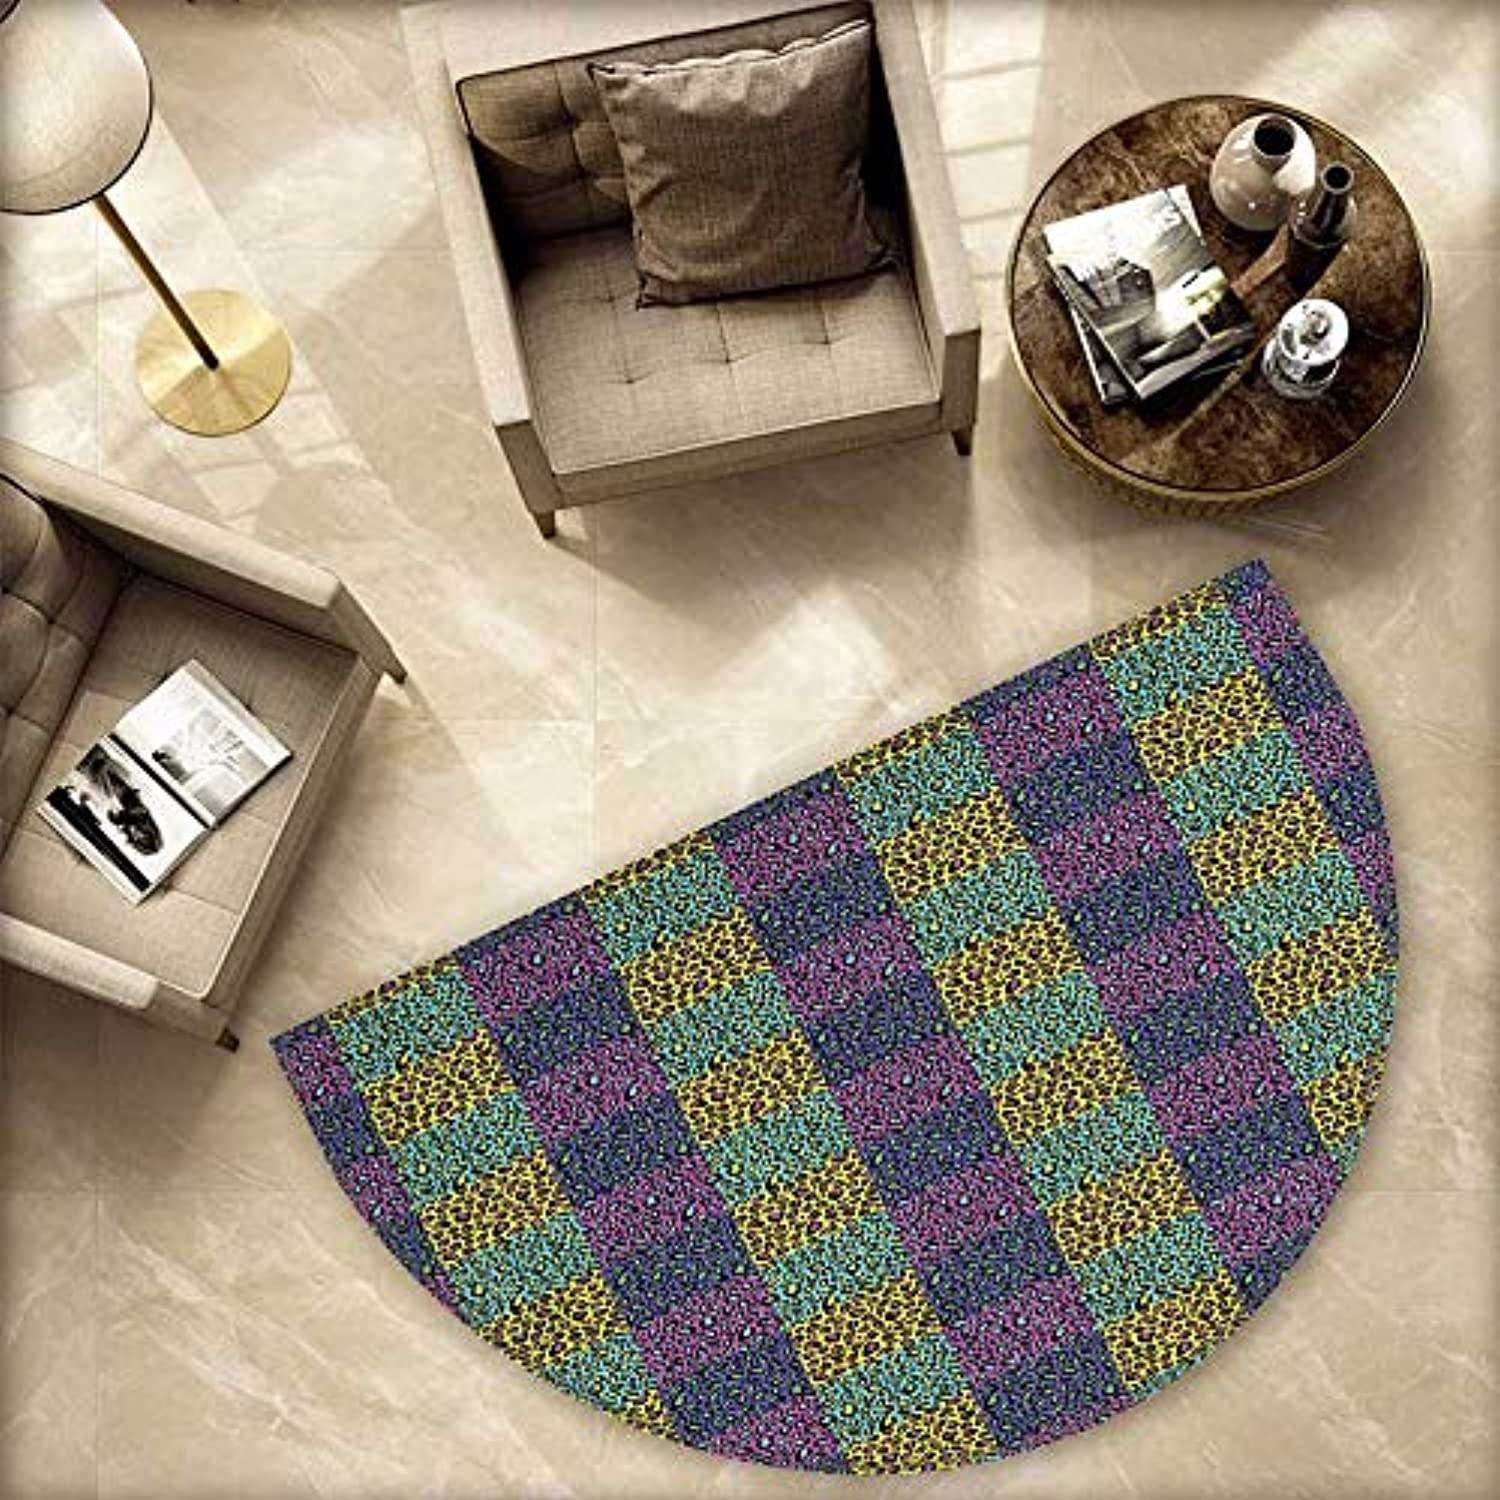 Leopard Print Semicircle Doormat colorful Checkered Pattern with Eighties Style Pop and Hipster Animal Spots Halfmoon doormats H 78.7  xD 118.1  Multicolor